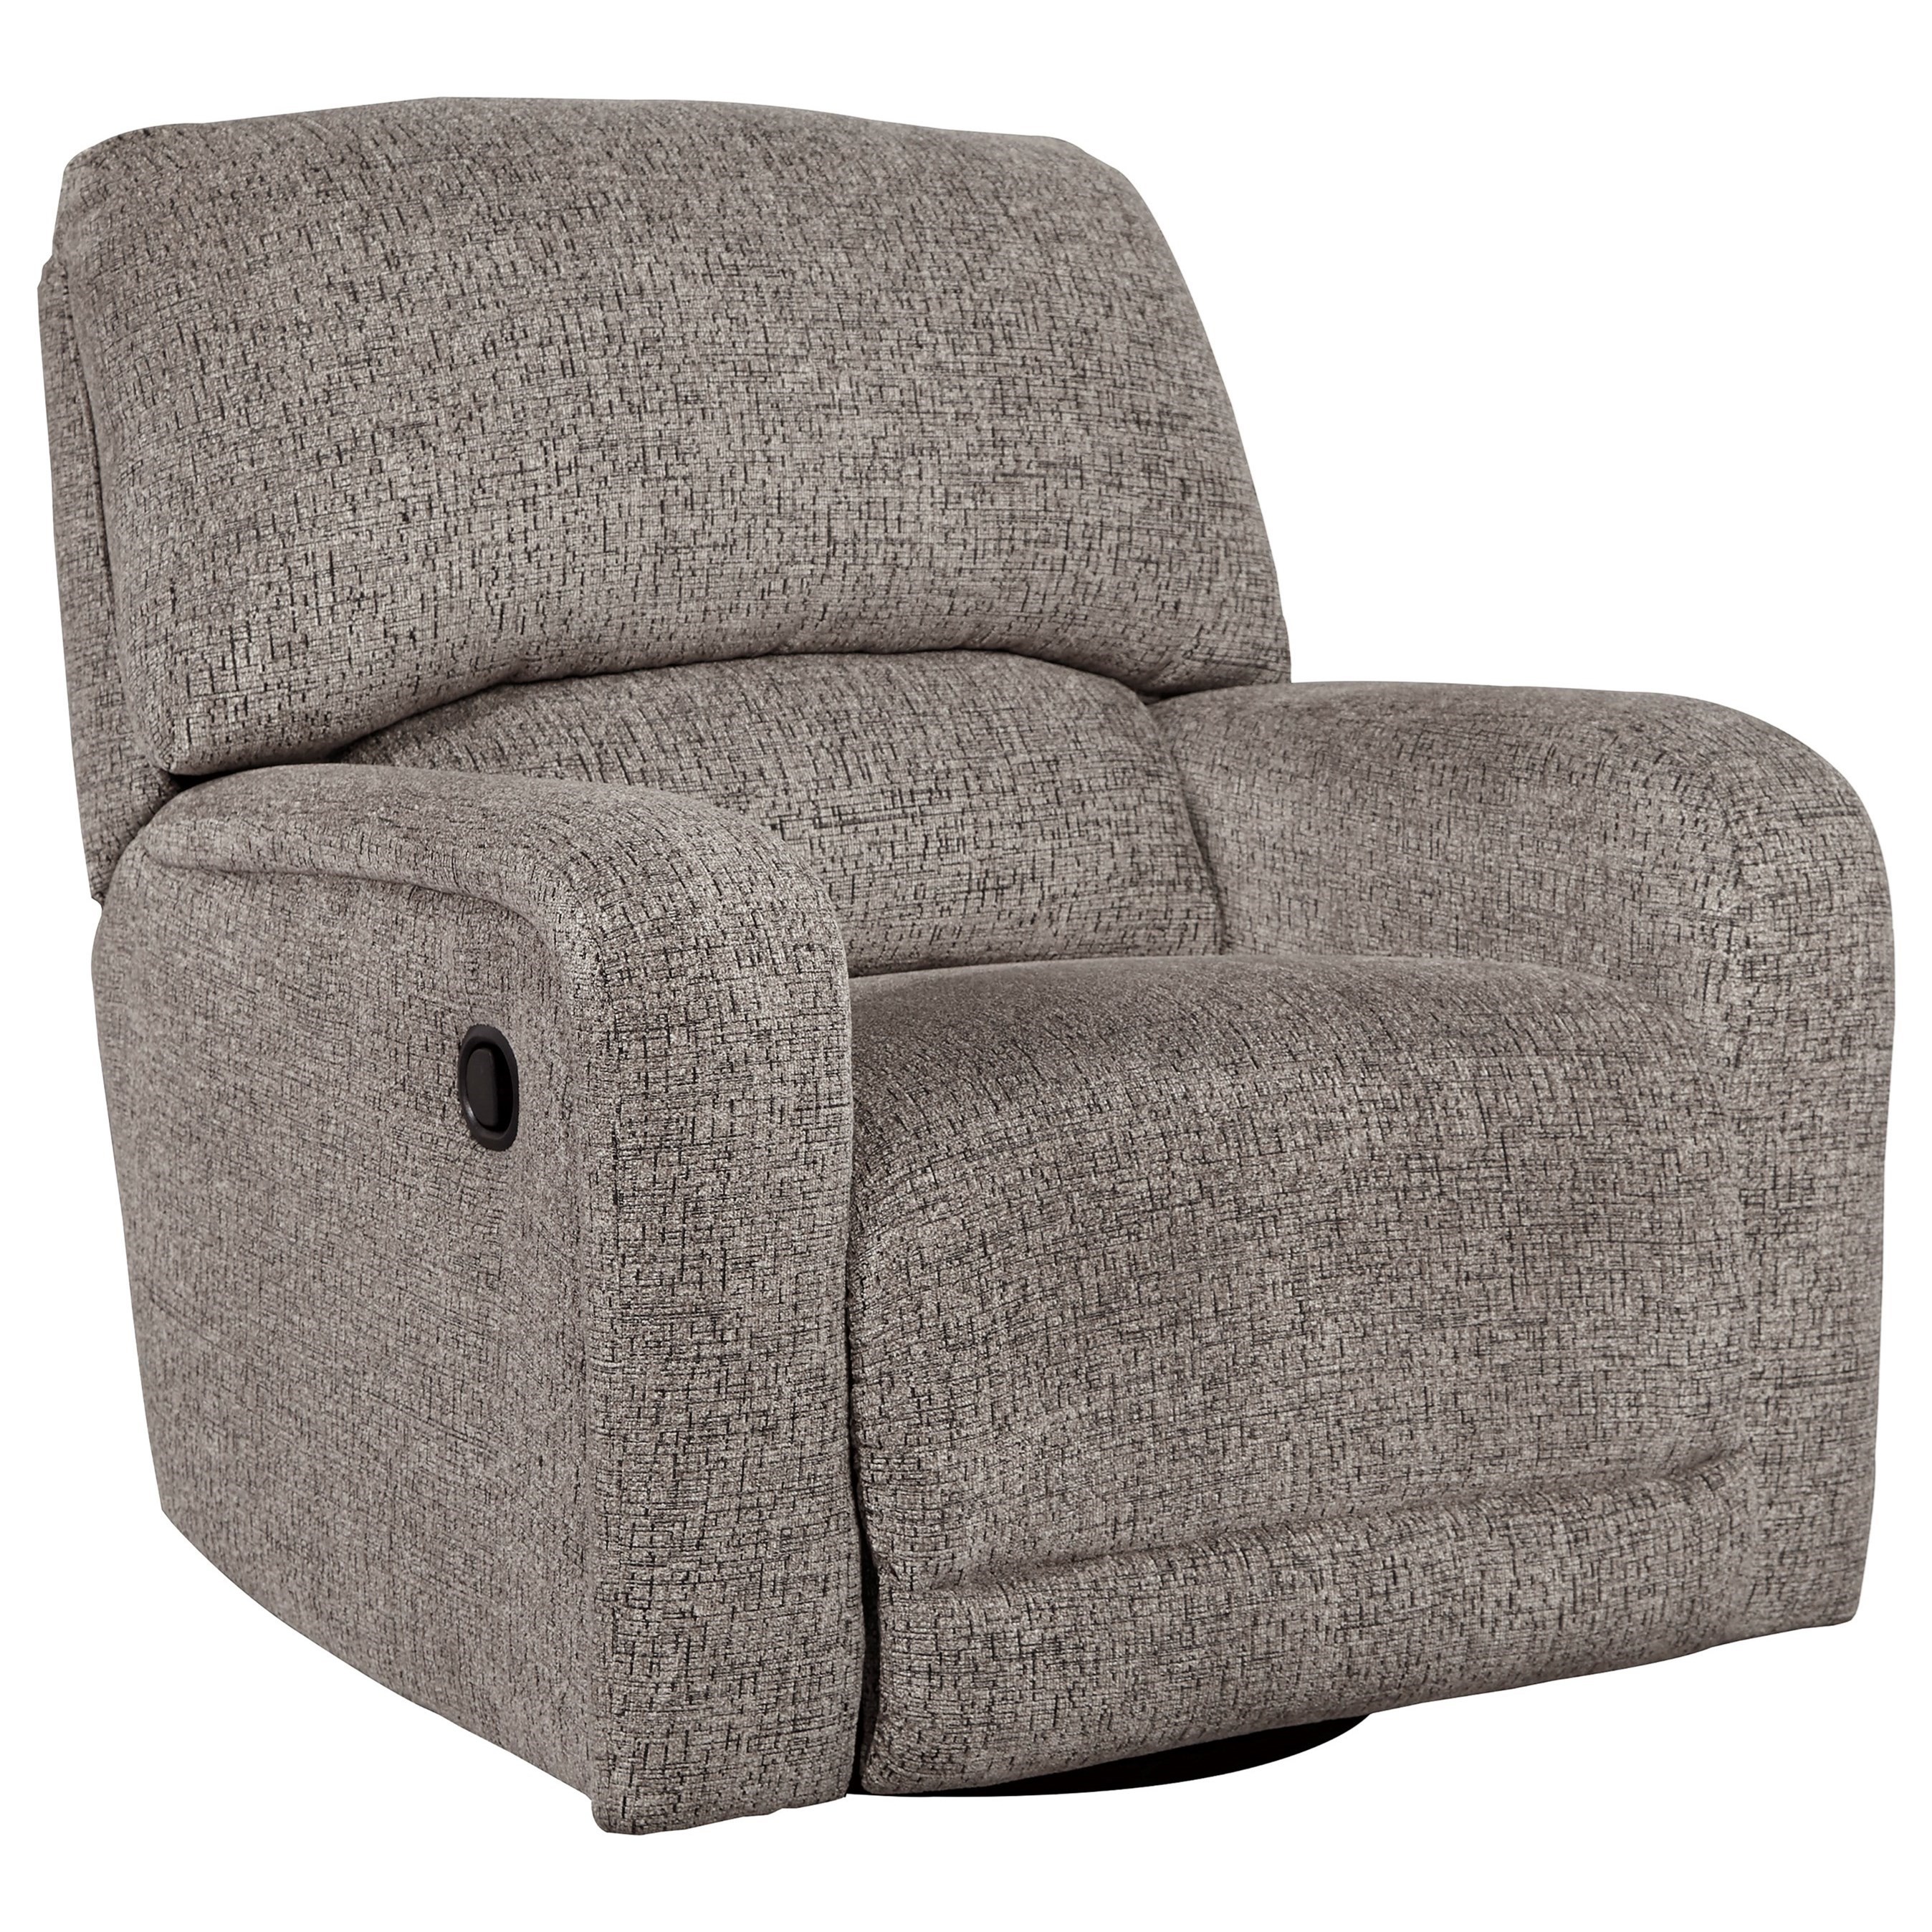 Signature Design by Ashley Pittsfield Swivel Glider Recliner - Item Number: 1790161